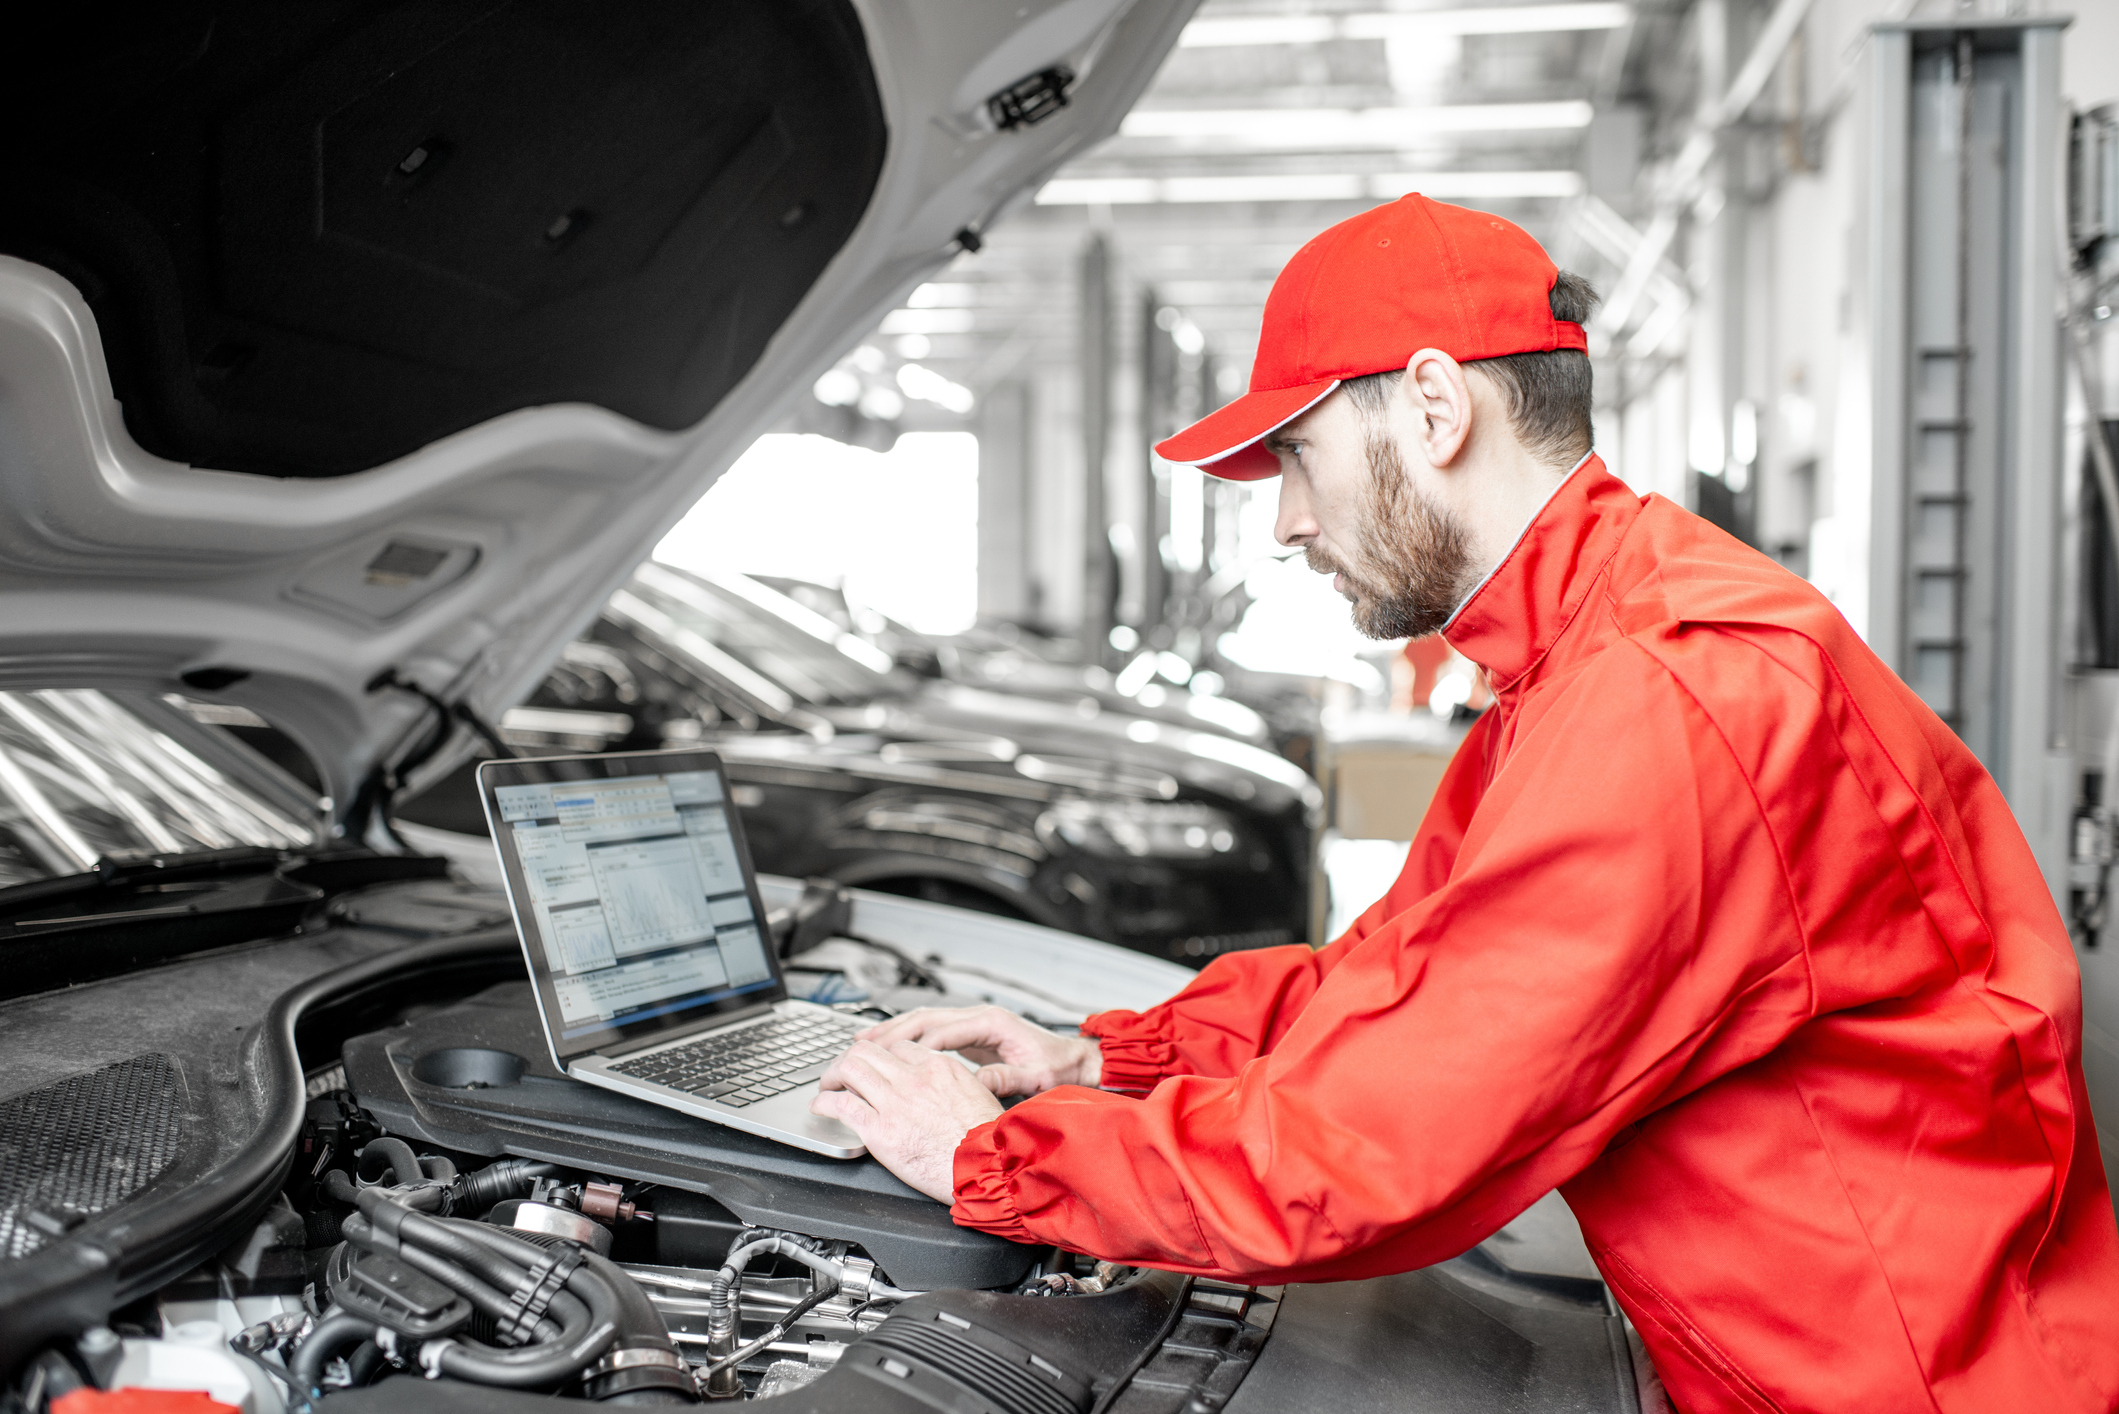 Scheller Automotive in Lexington, Kentucky works on numerous vehicles with the use of quality truck service equipment.